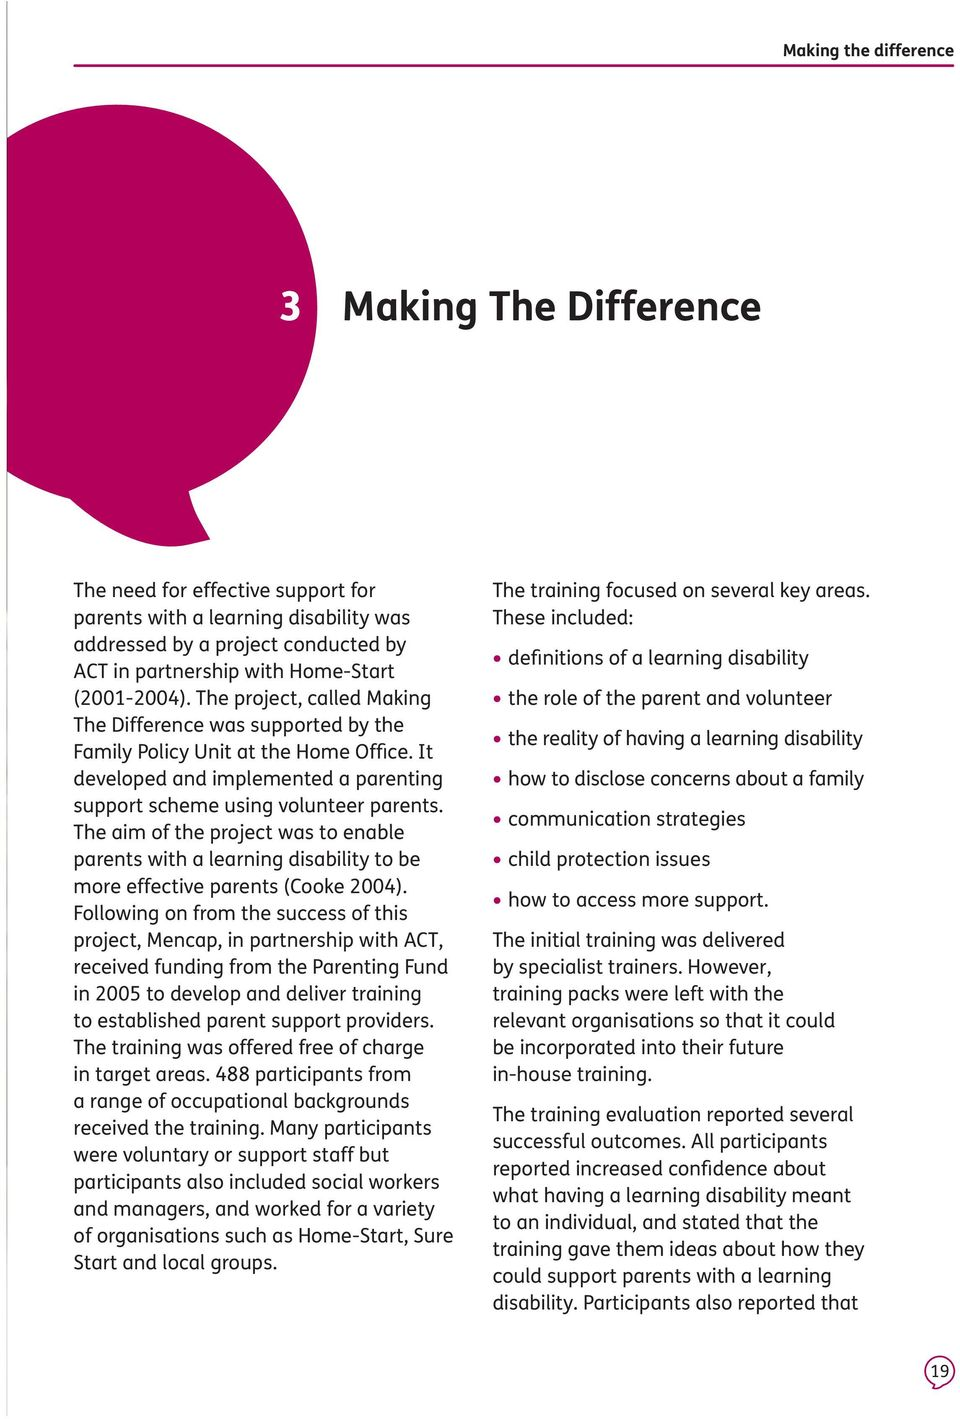 The aim of the project was to enable parents with a learning disability to be more effective parents (Cooke 2004).